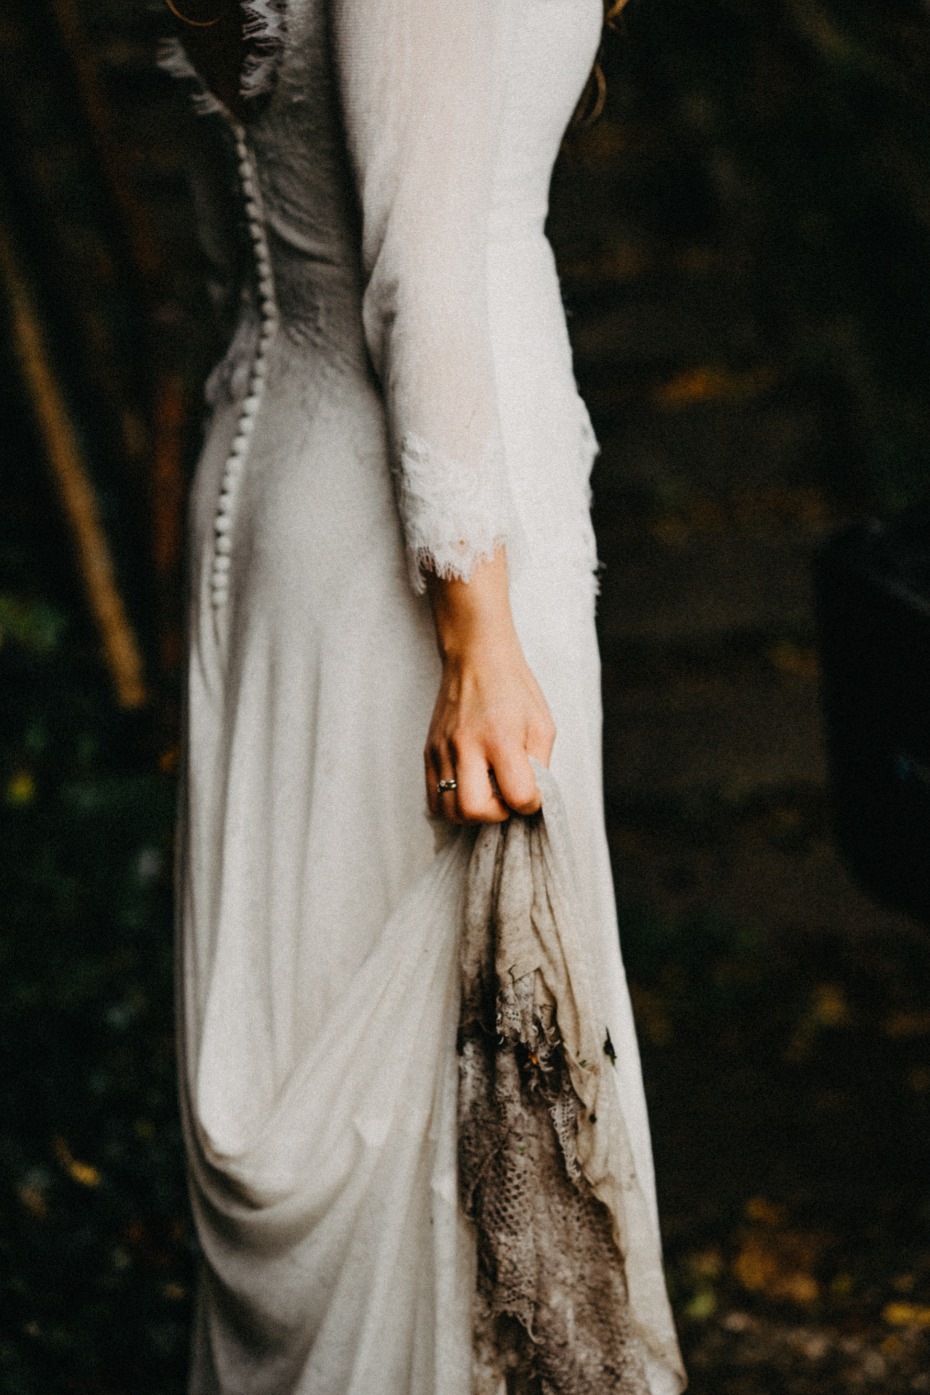 Creepy Bride Holding Her Black Stained Dress Up